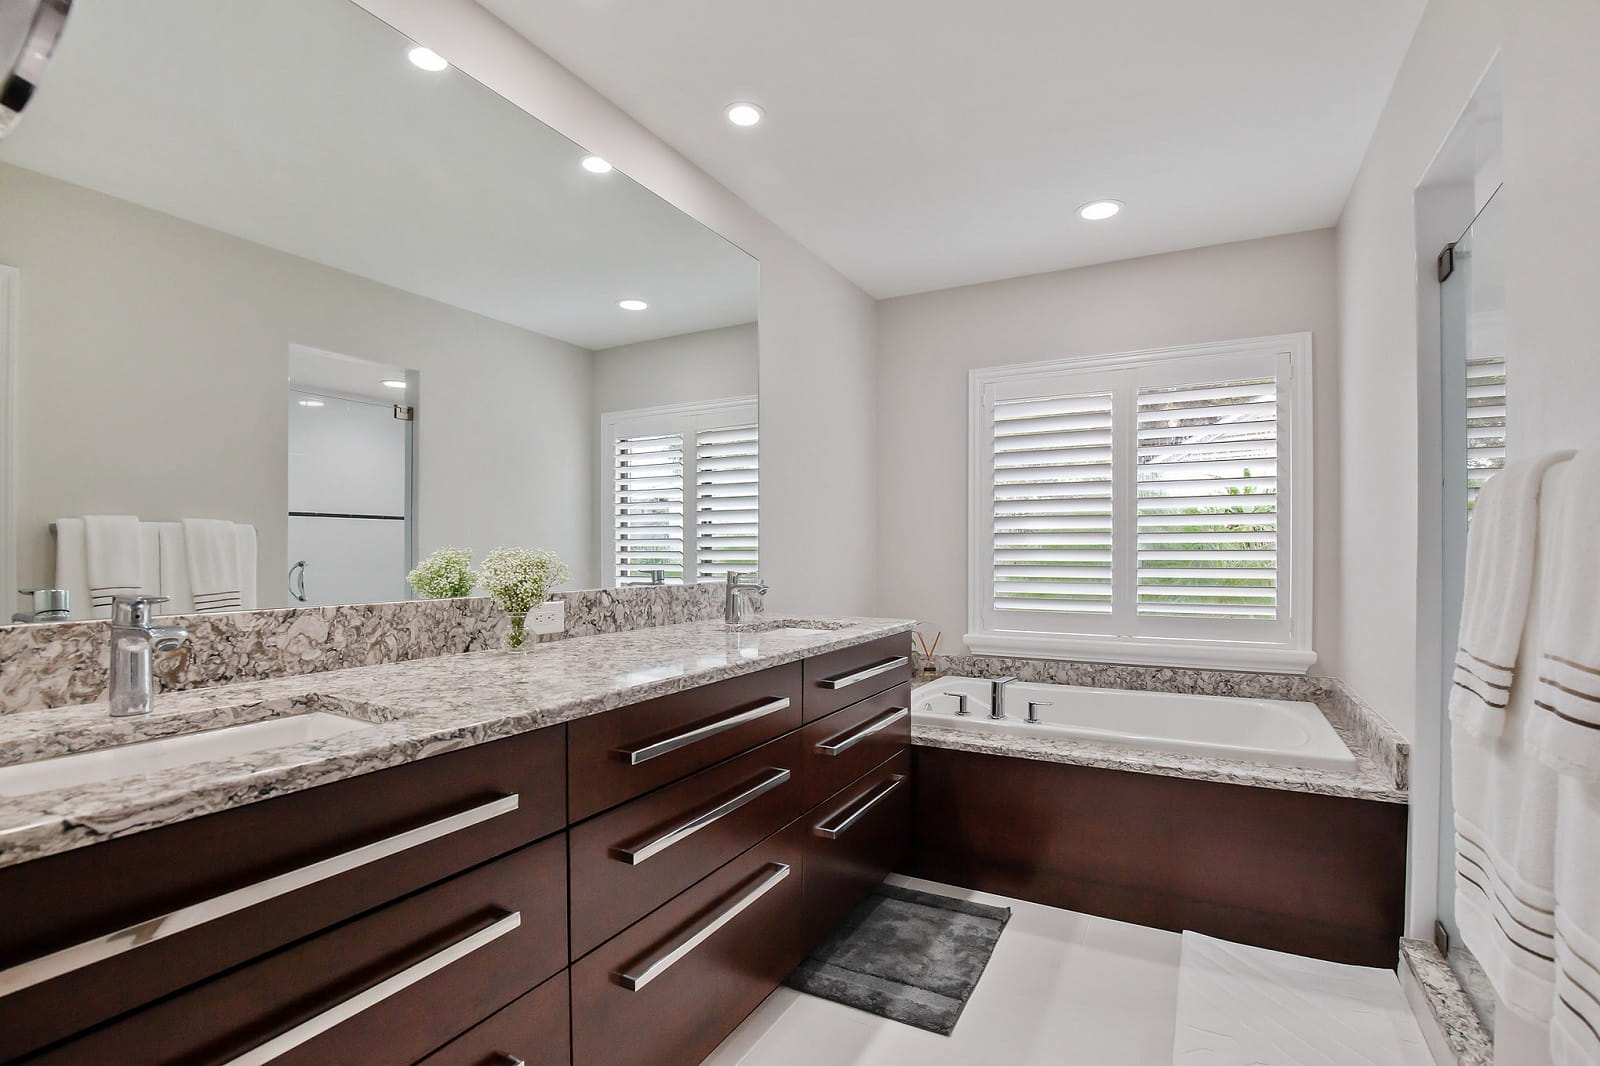 Real Estate Photography in Tampa - FL - USA - Bathroom View